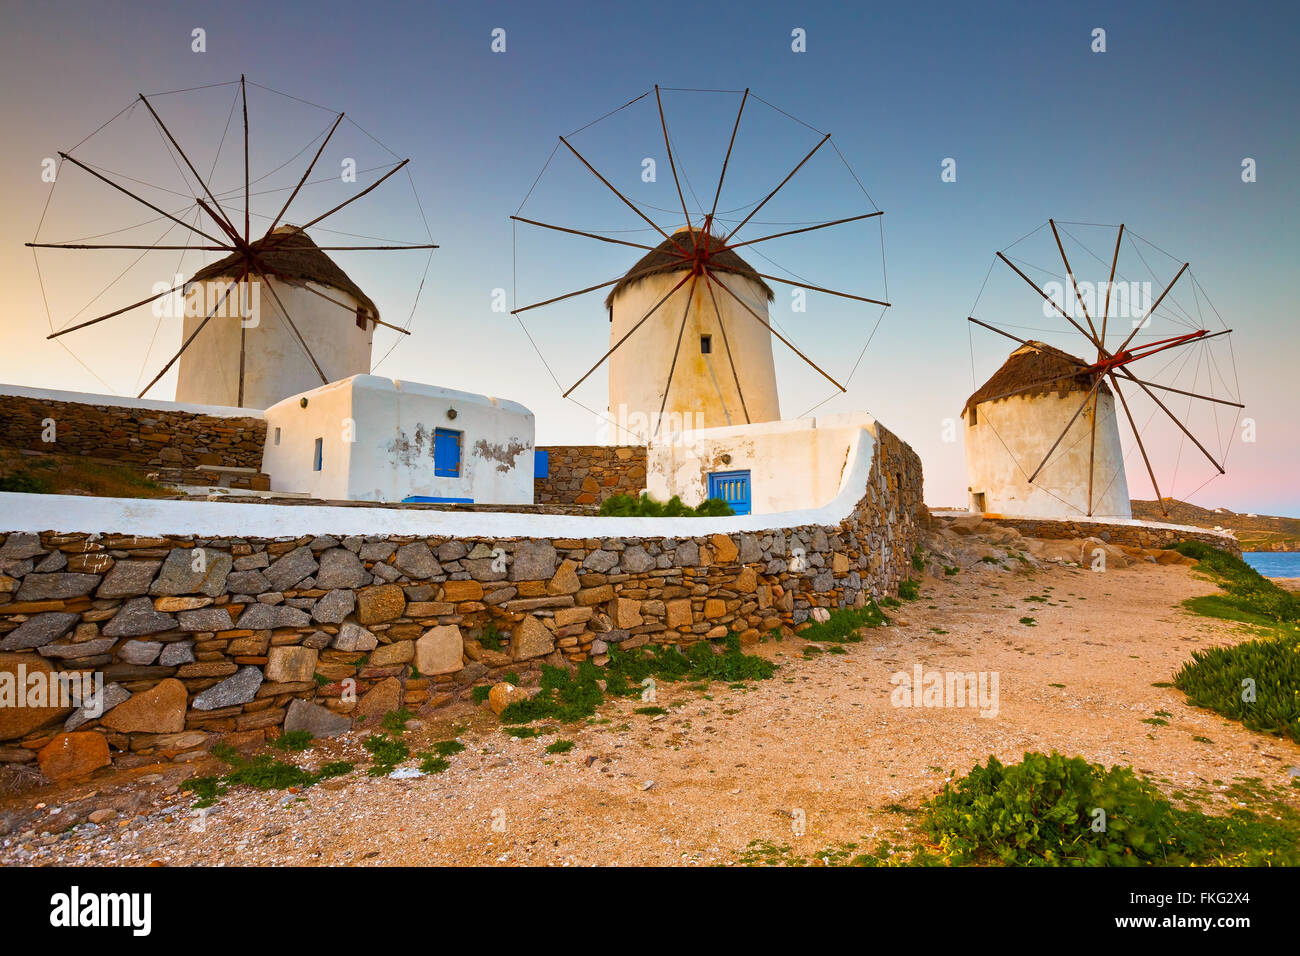 Old traditional windmills over the town of Mykonos. - Stock Image